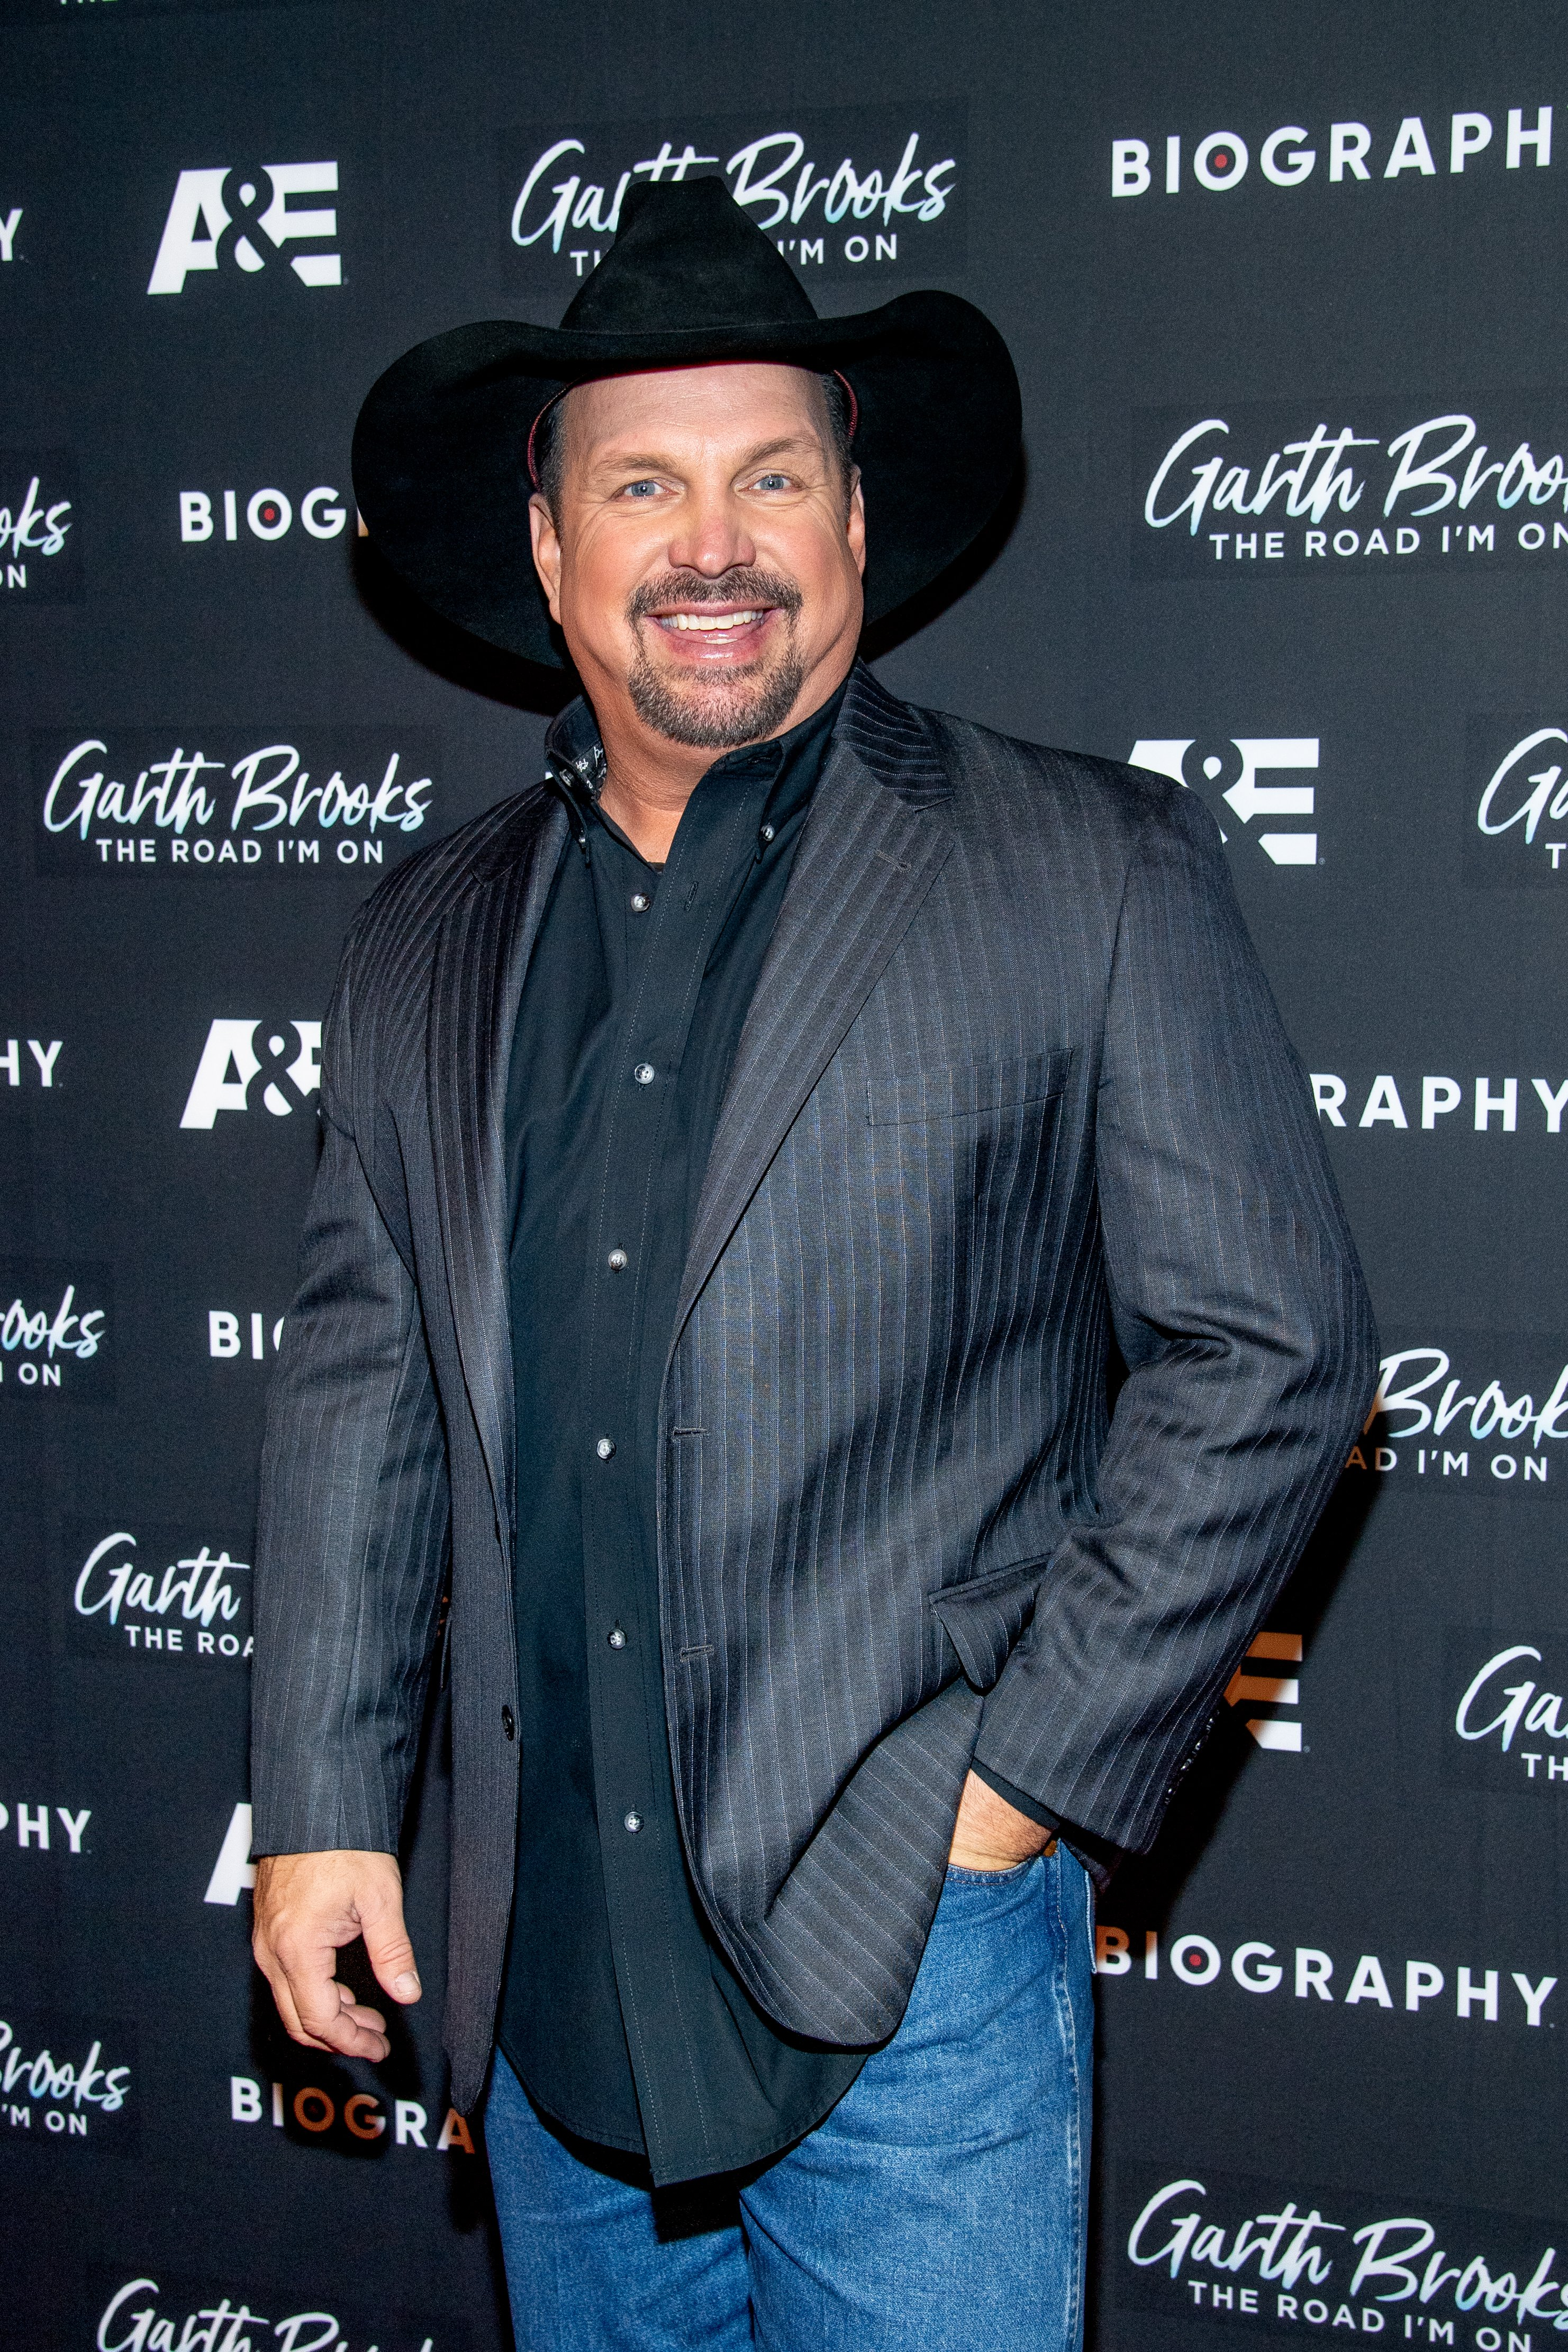 garth brooks documentary